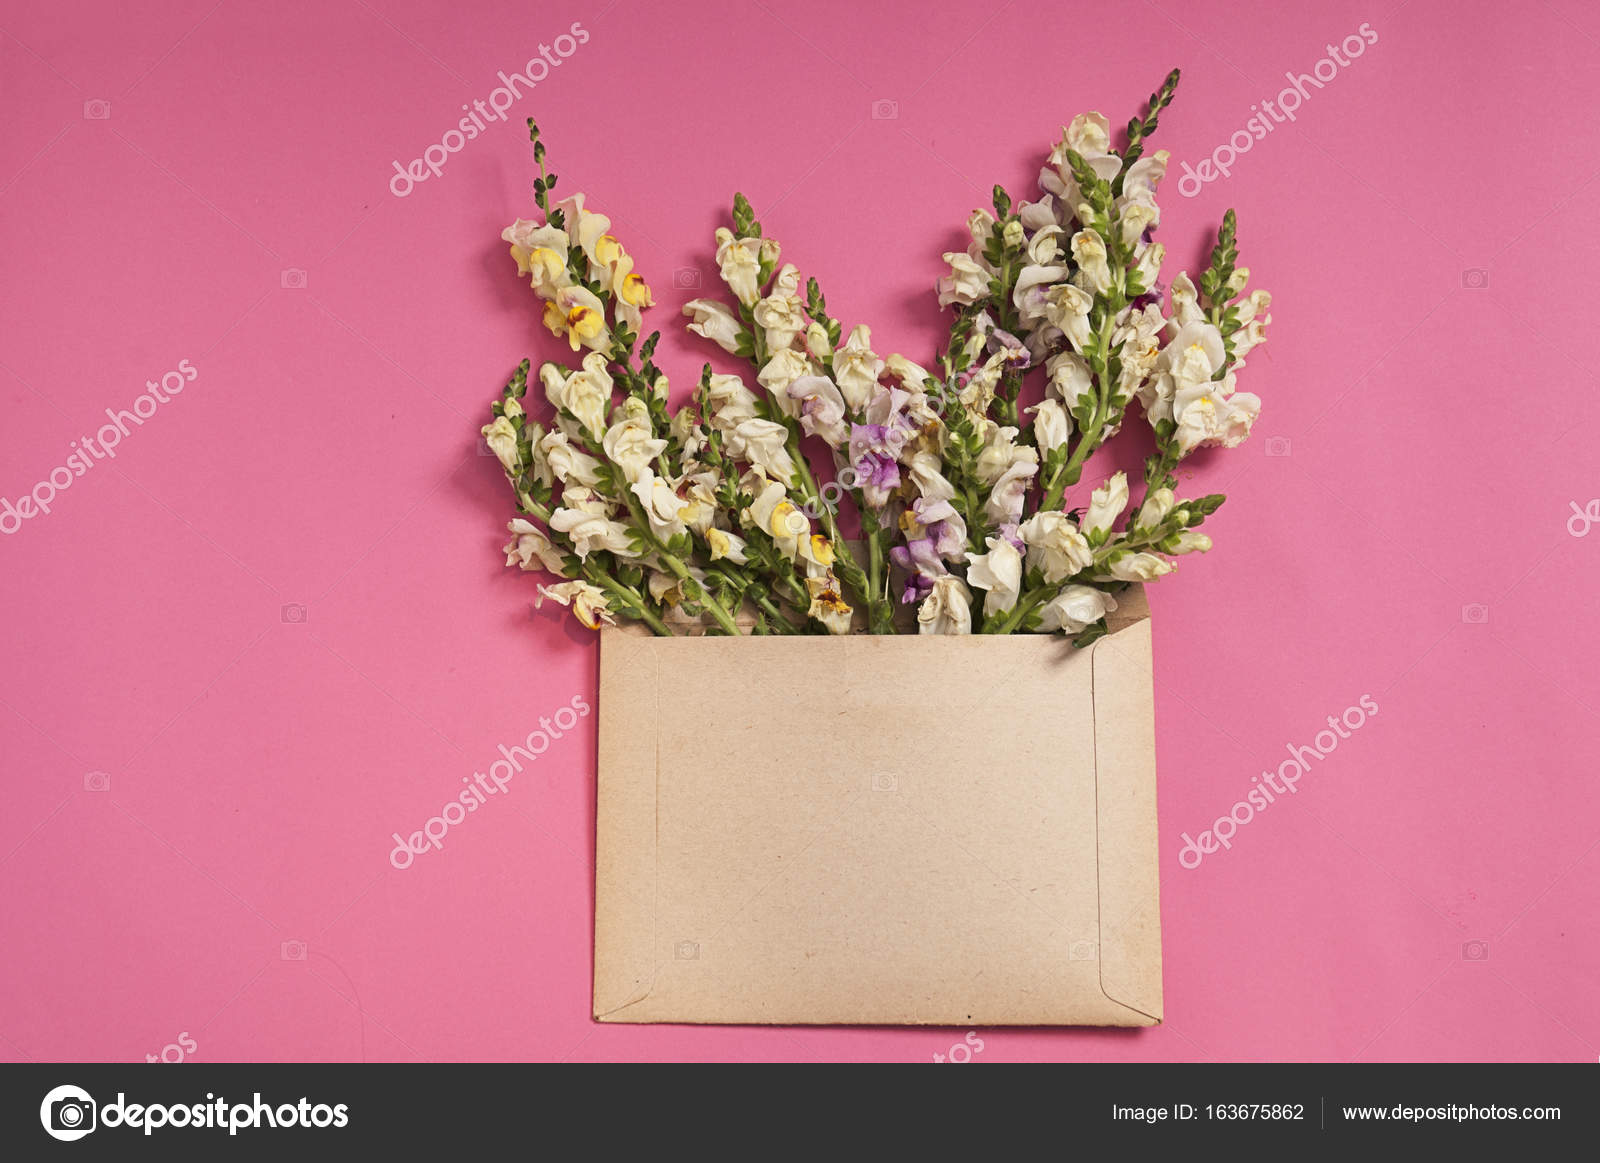 Flowers Composition Gifts Heart Shaped Flowers Envelope Pink